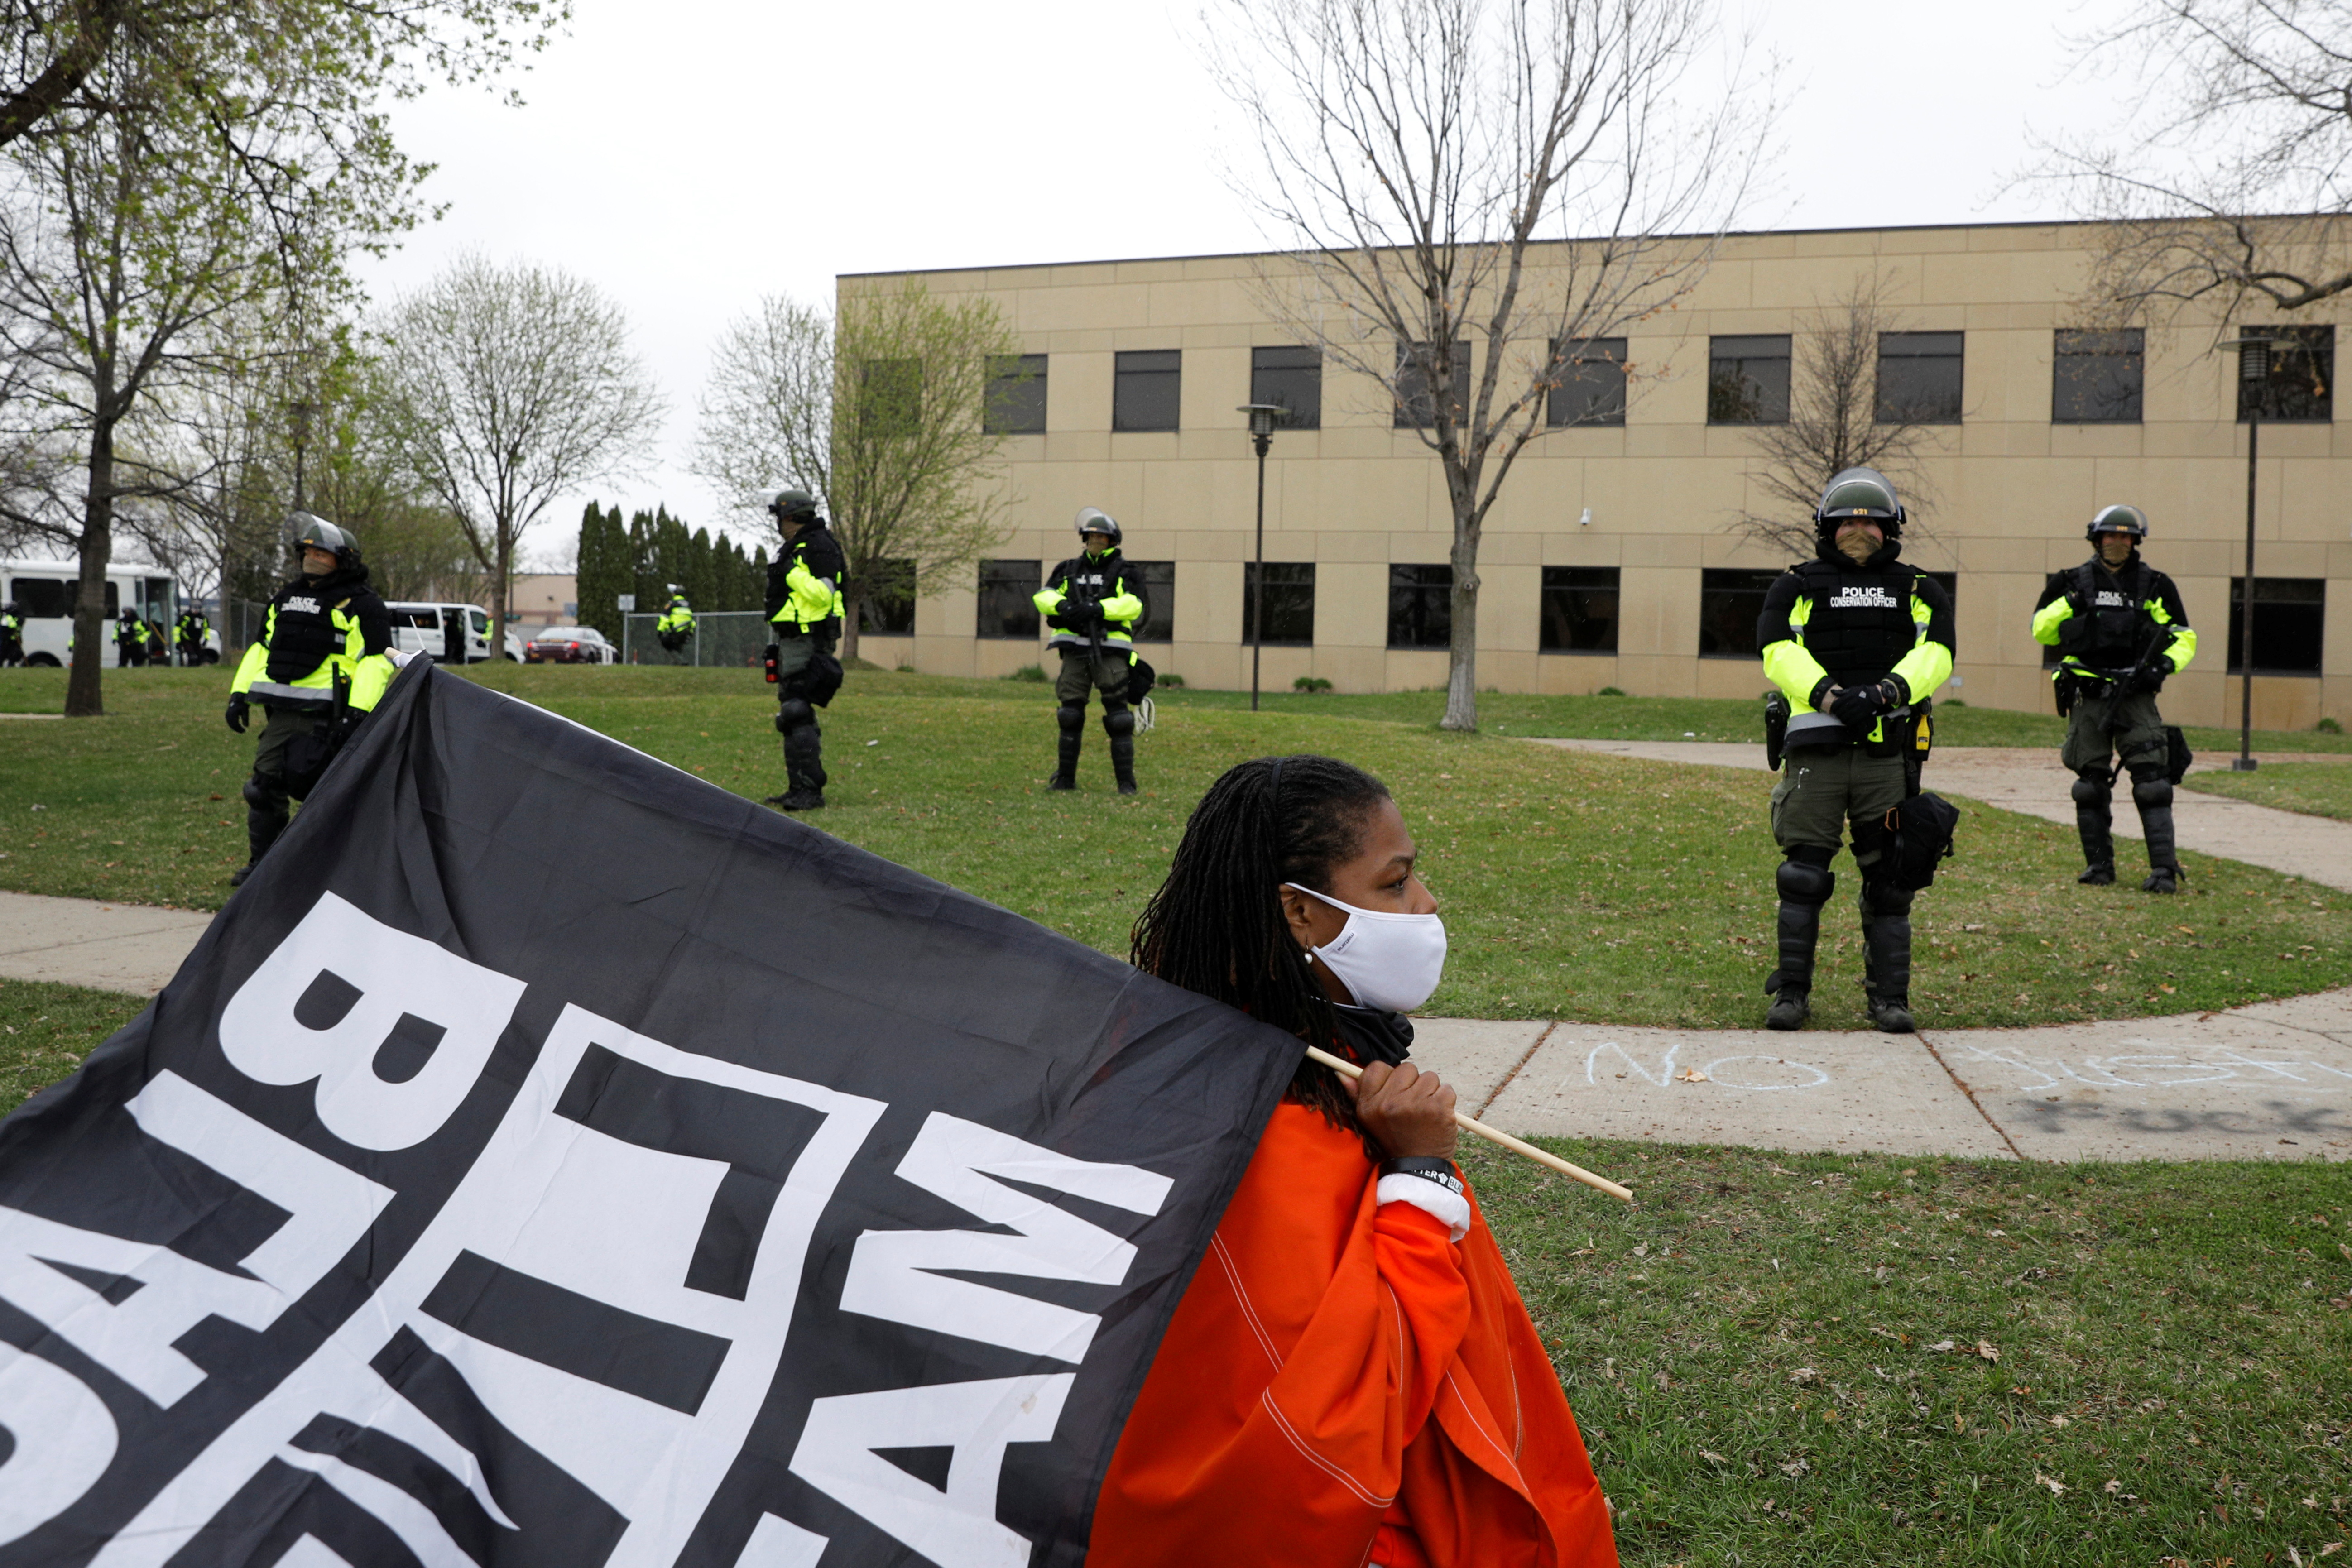 An activist paces in front of officers at the Brooklyn Center Police Department after an officer-involved killing of Daunte Wright, 20, following a traffic stop in Brooklyn Center, Minnesota, U.S., April 12, 2021. REUTERS/Nicholas Pfosi